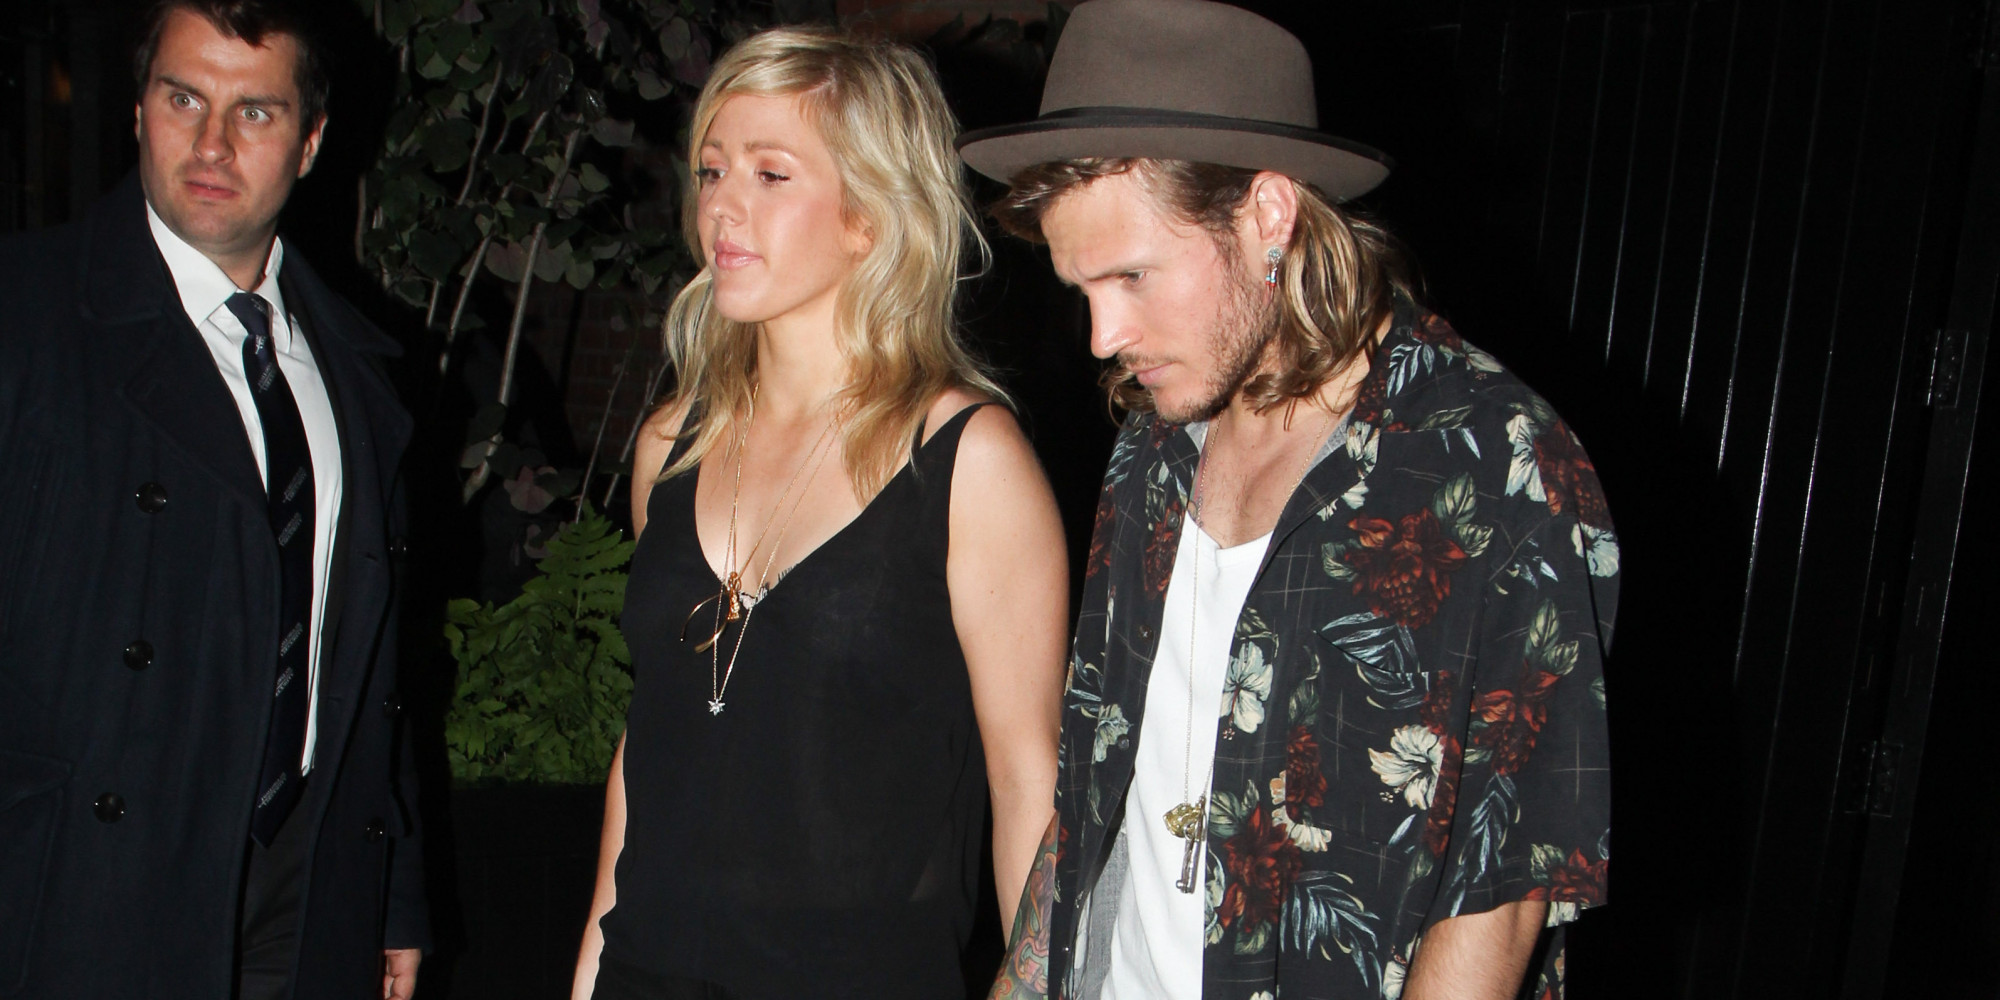 do calvin harris and ellie goulding dating who